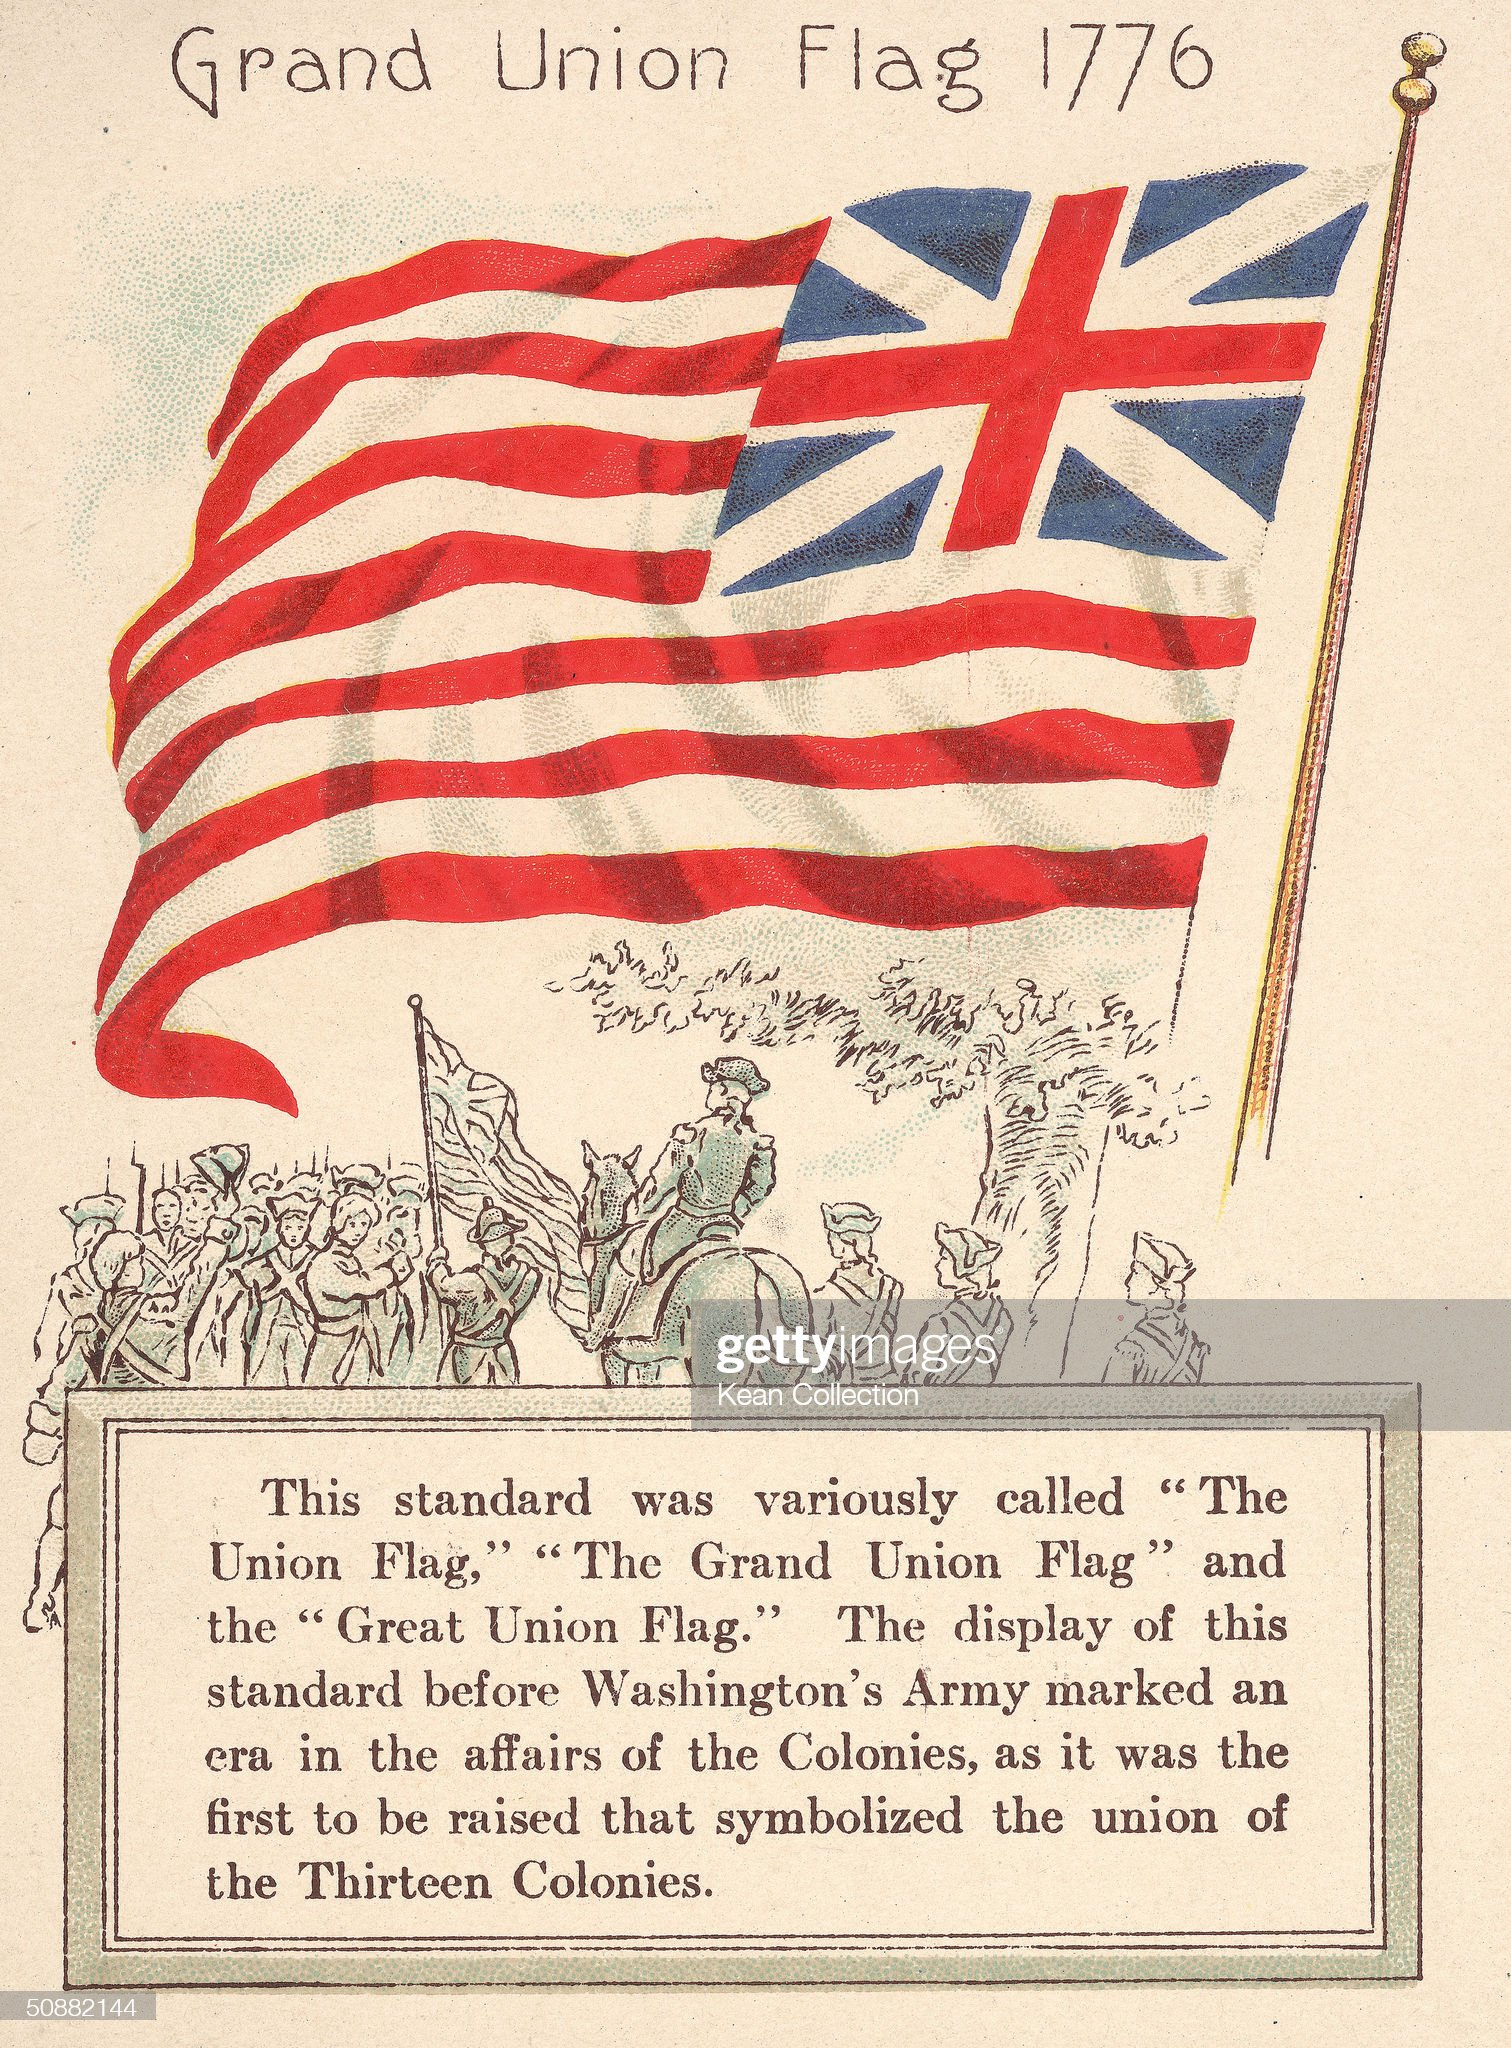 Grand Union Flag Of 1776 : News Photo